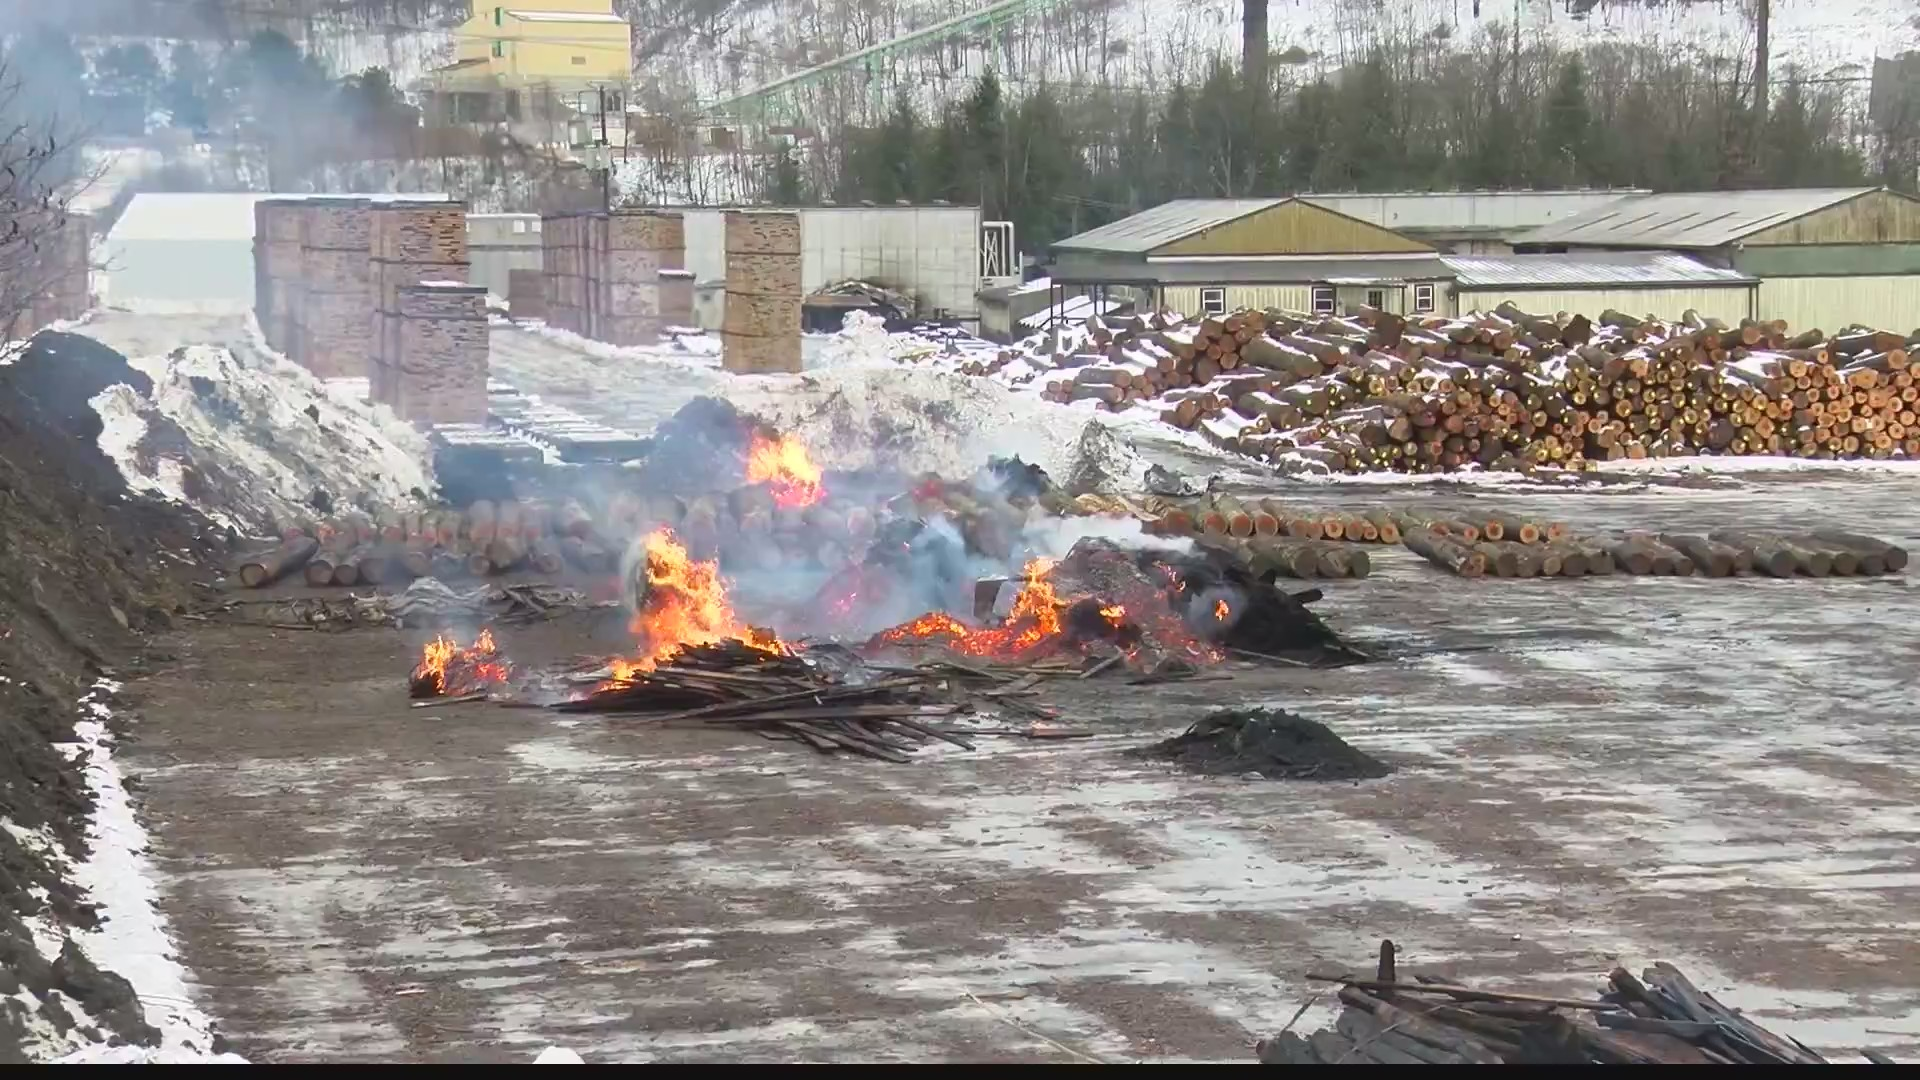 Owner of lumber yard destroyed by fire plans to get back to business